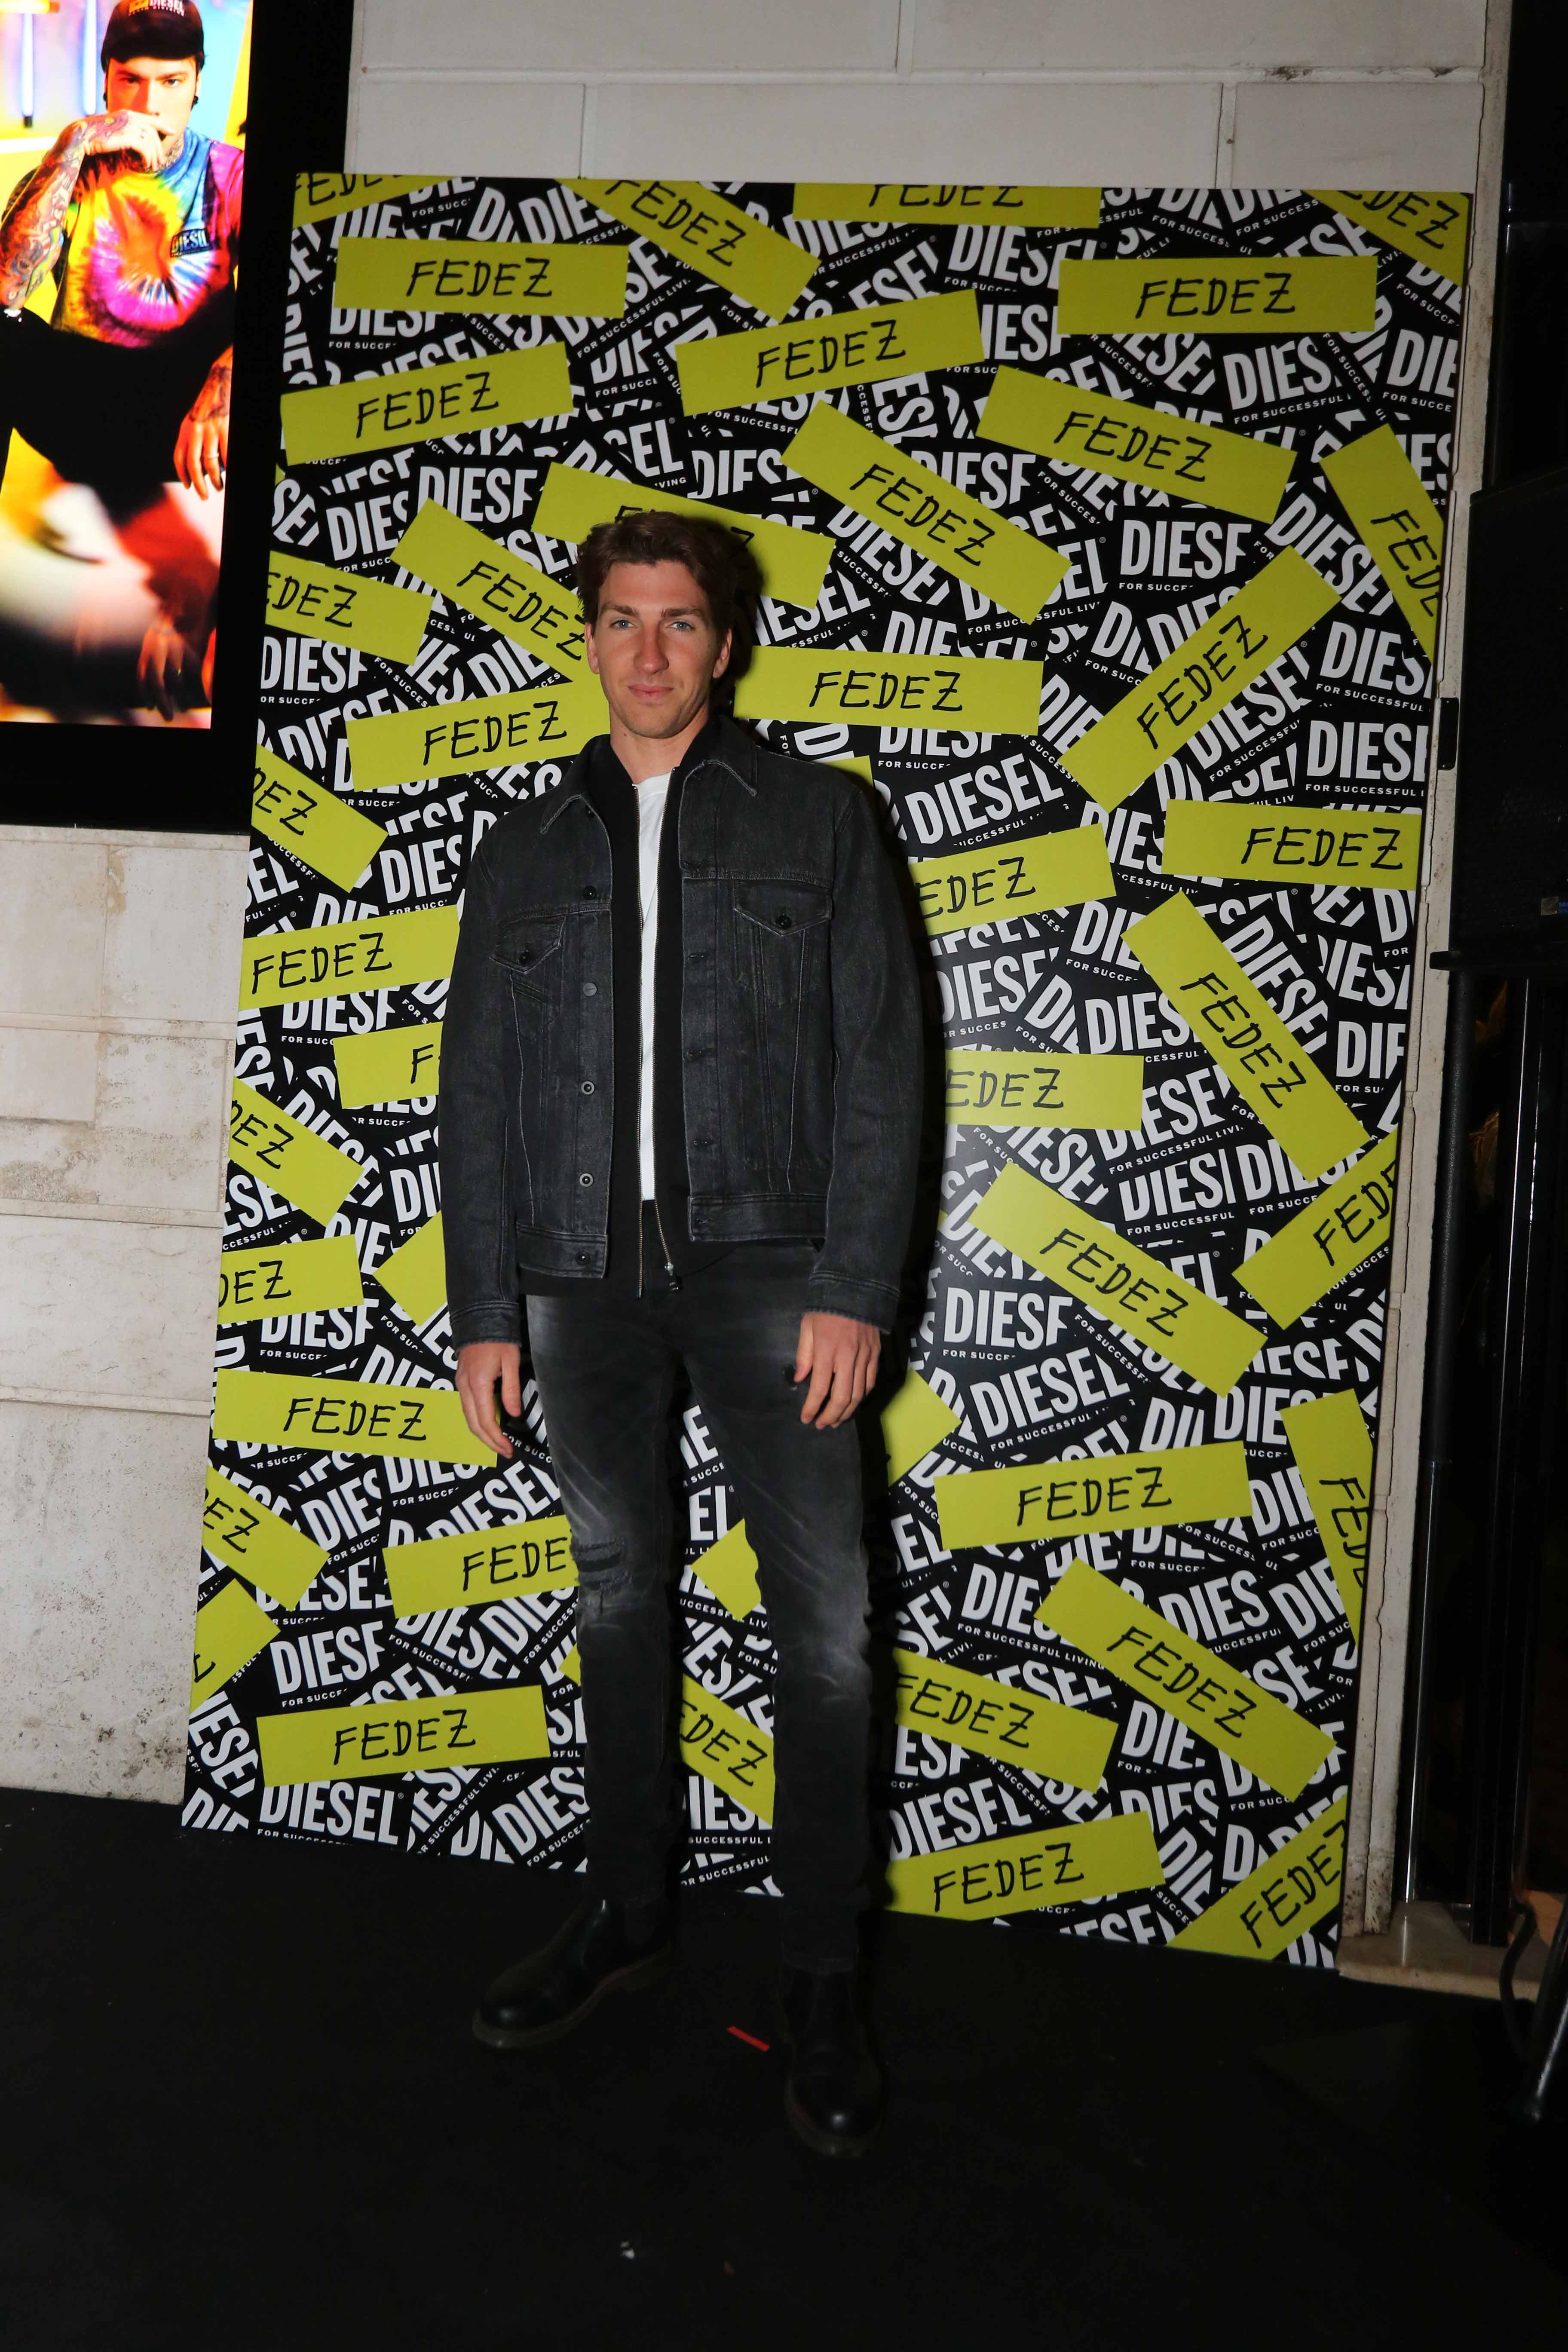 Diesel Fedez Roma party